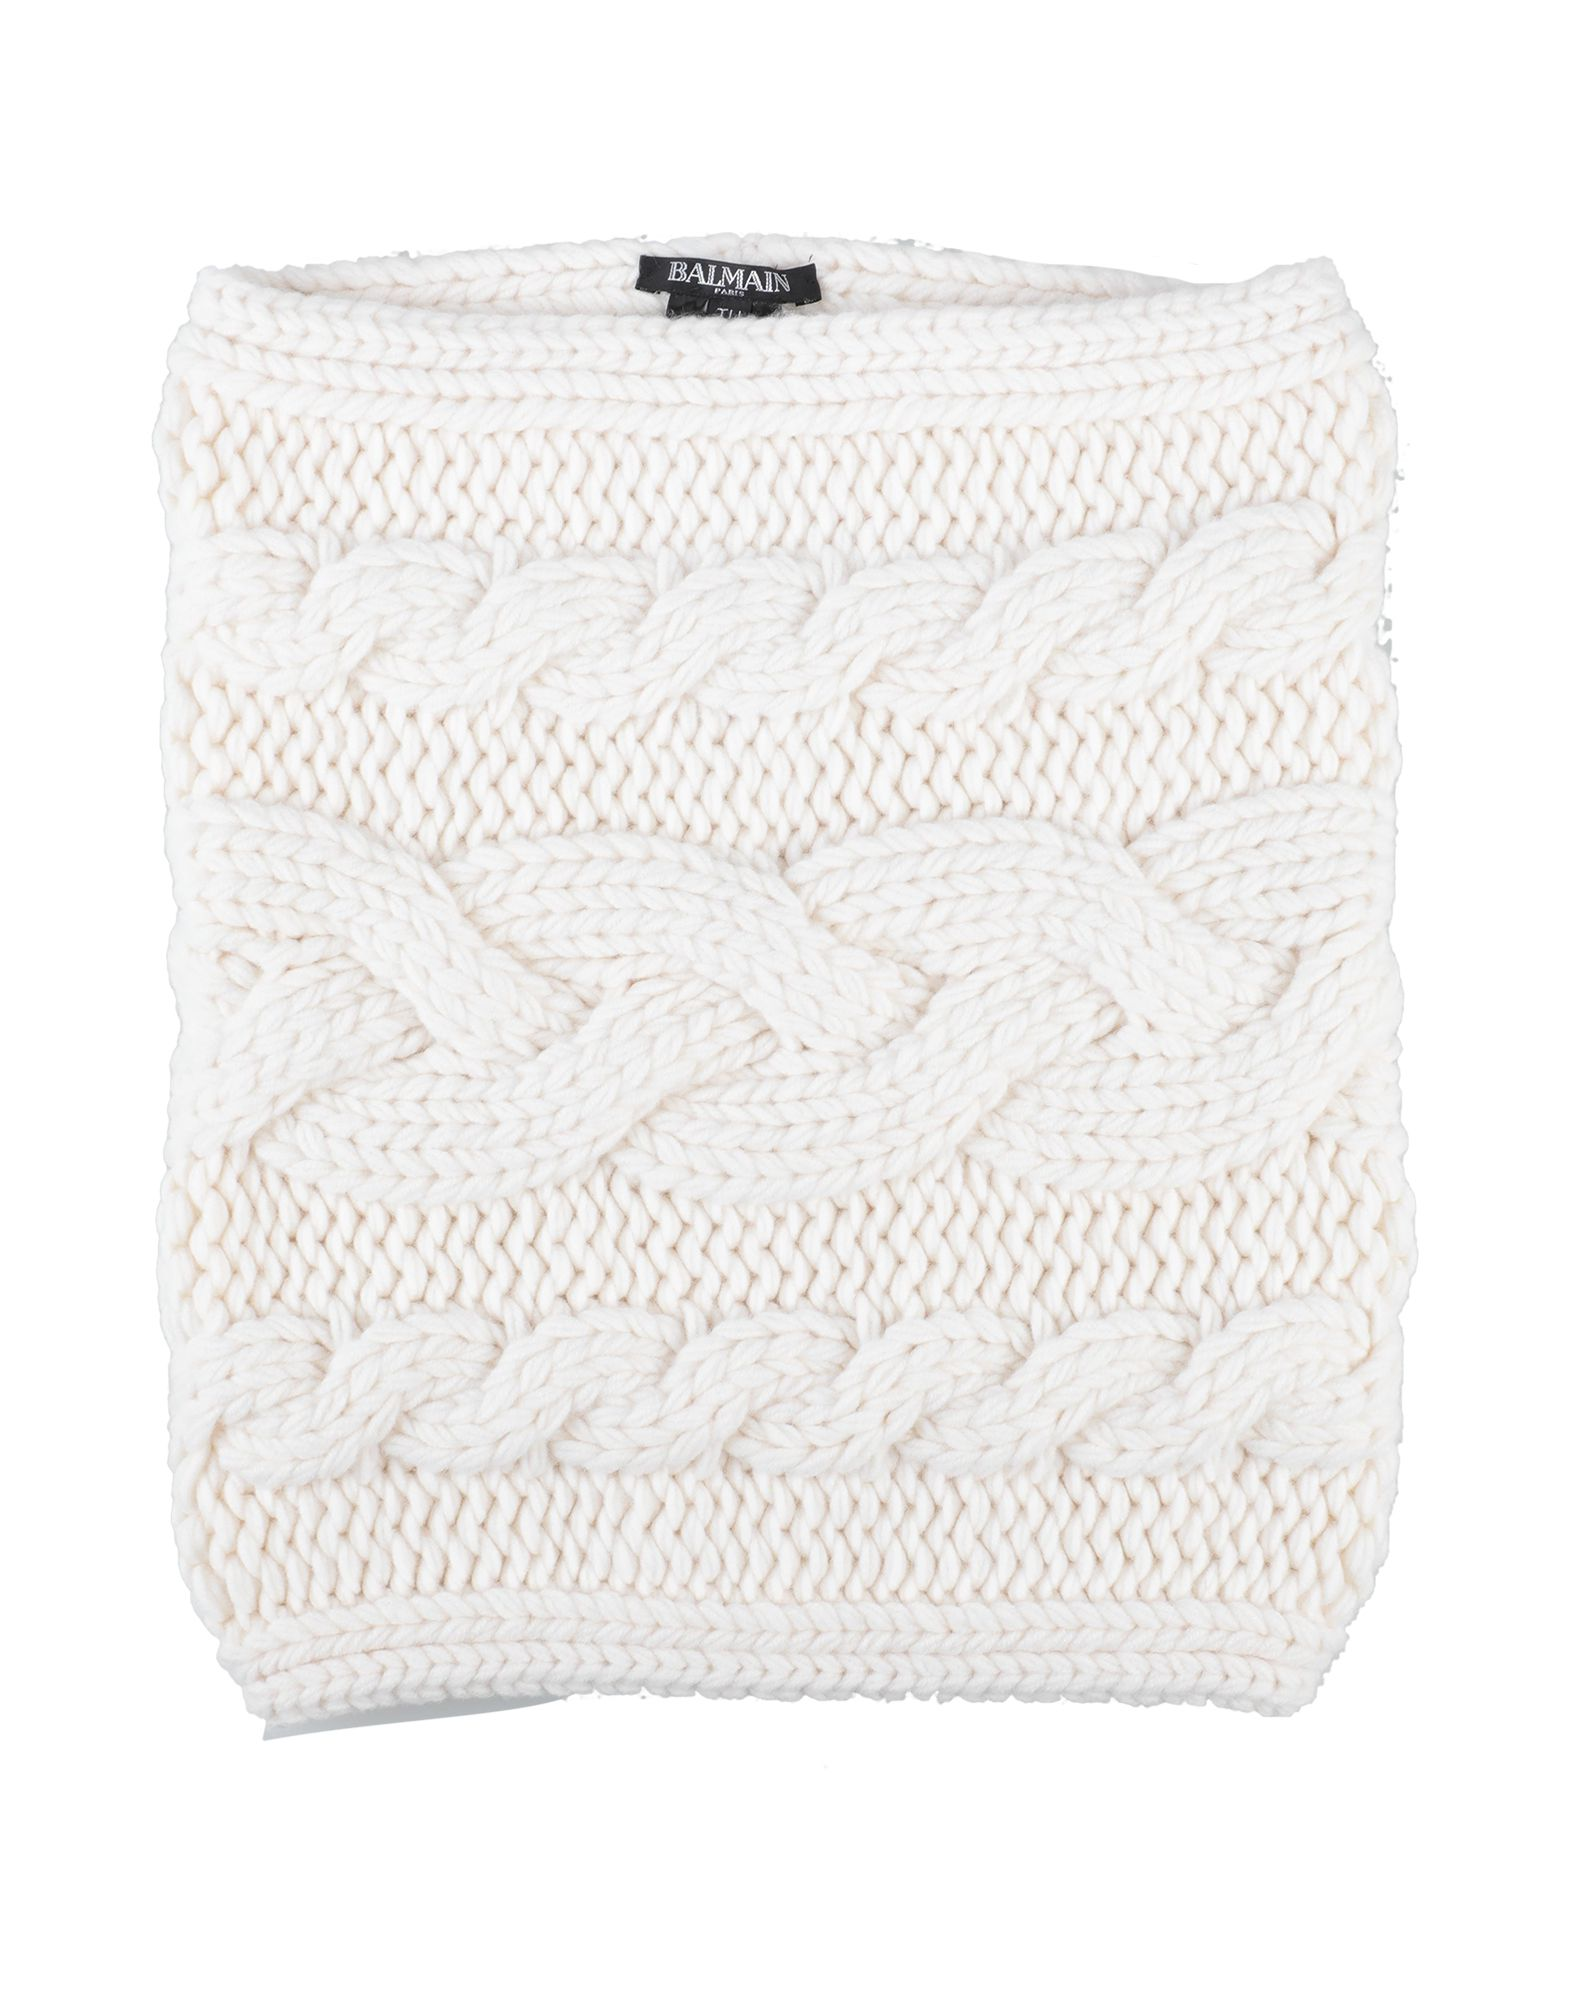 BALMAIN Collars. knitted, solid color, medium-weight knit. 100% Wool